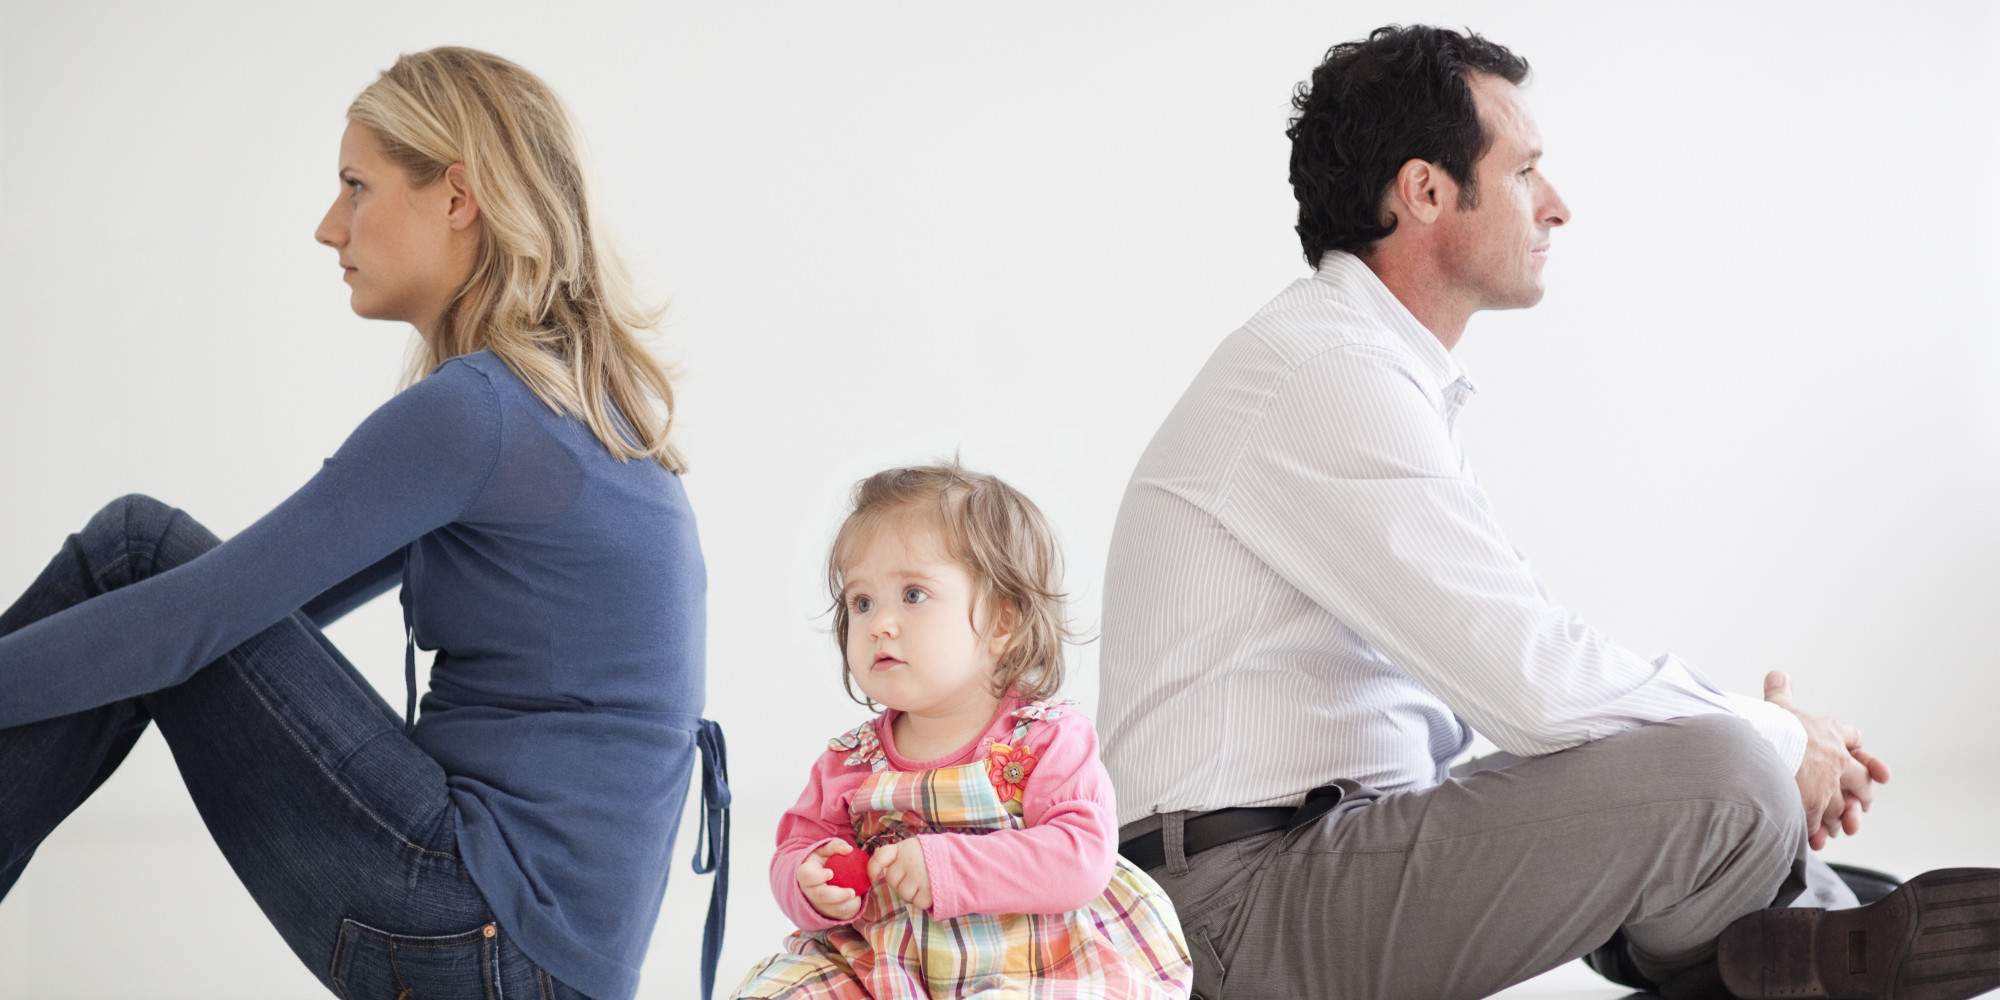 separated parents Co-parenting tips for divorced parents making joint custody work after a divorce or separation co-parenting after a split is rarely easy, especially if you have a contentious relationship with your ex-partner.